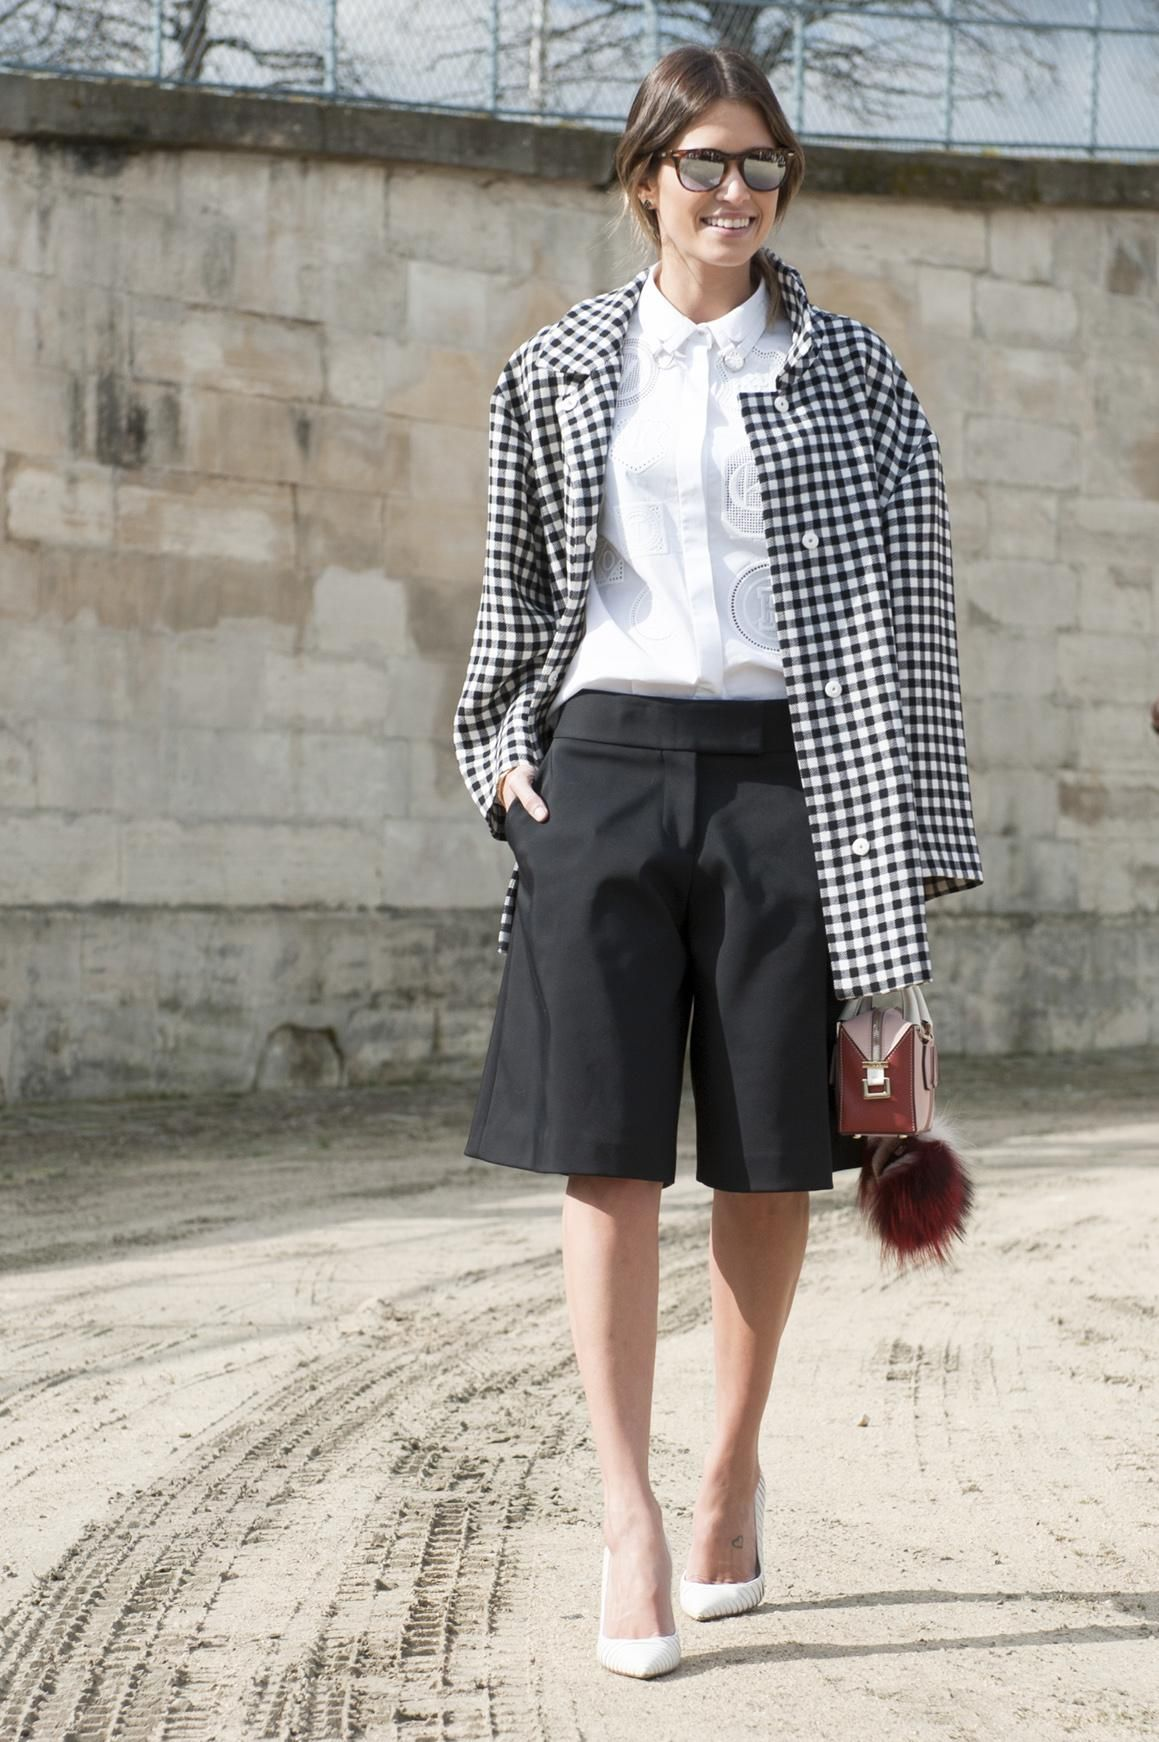 Helena Bordon's Best Street Style Outfits - black and white checked coat styled with